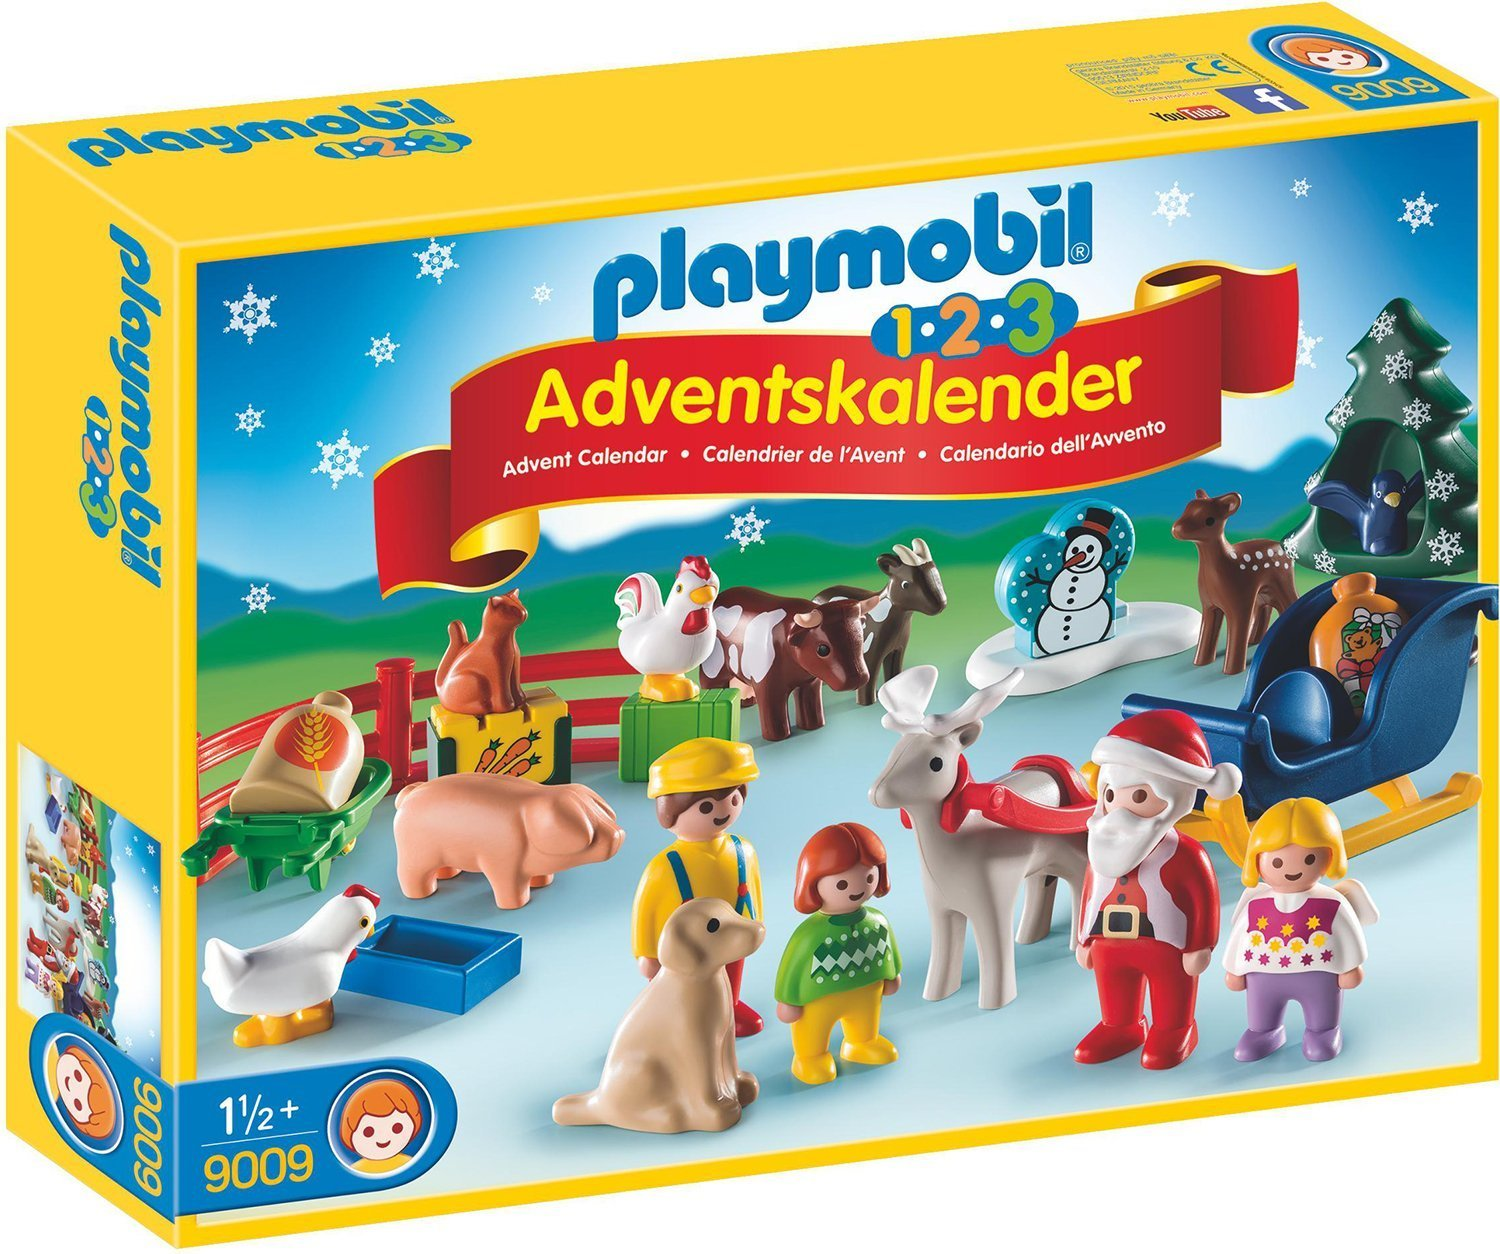 Playmobil Adventskalender amazon